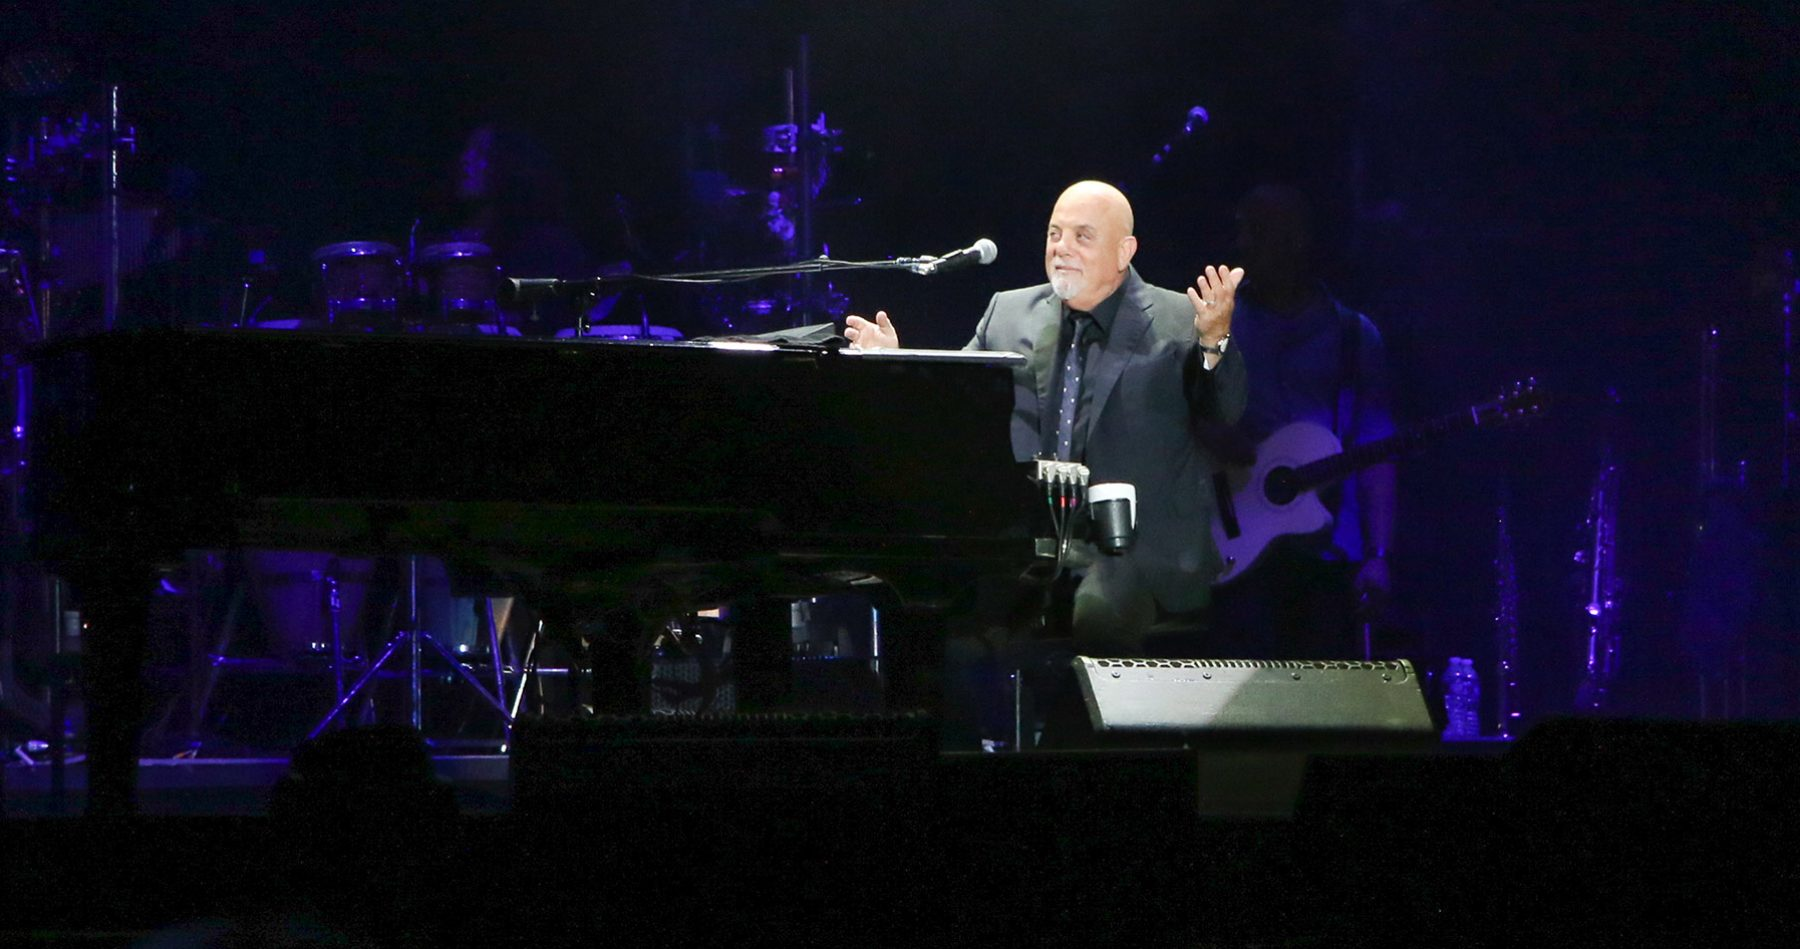 Billy Joel in concert at Citizens Bank Park Philadelphia, PA July 27, 2018